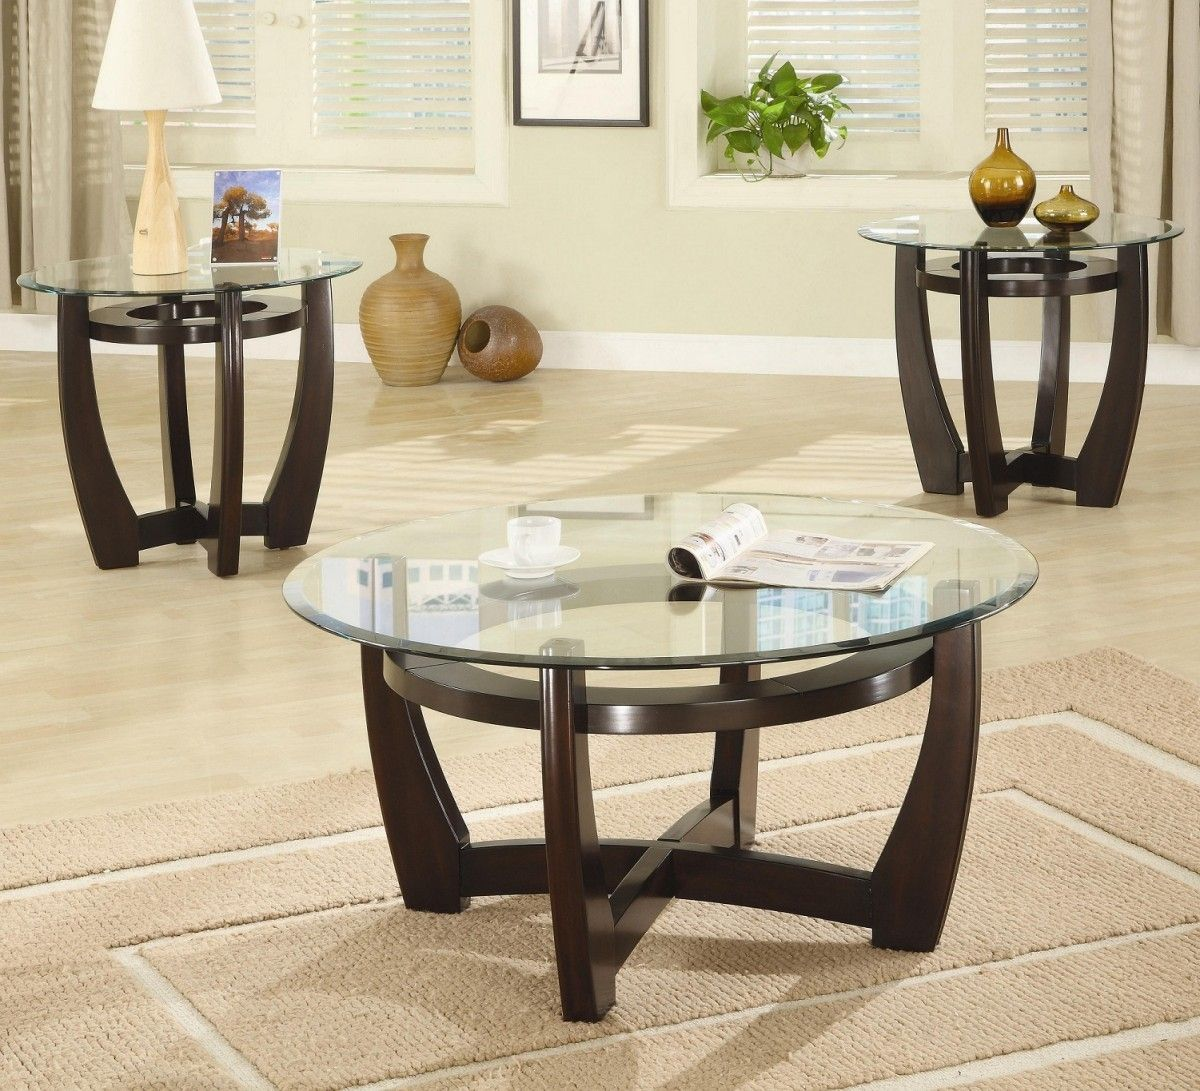 Round Glass Coffee Table Sets | http://lachpage.com | Pinterest